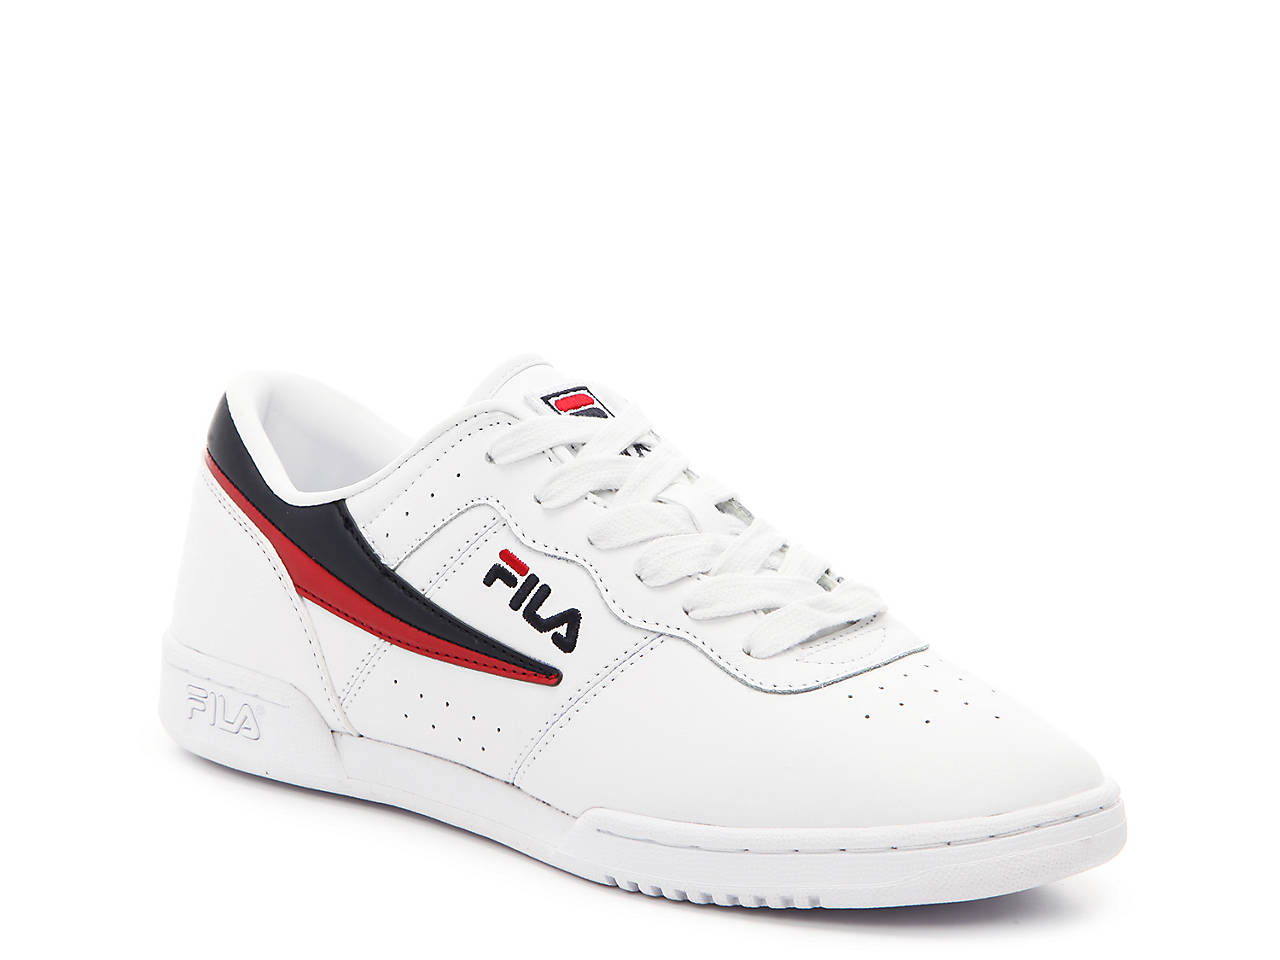 072b66fd30da Fila Original Fitness Sneaker - Women s Women s Shoes